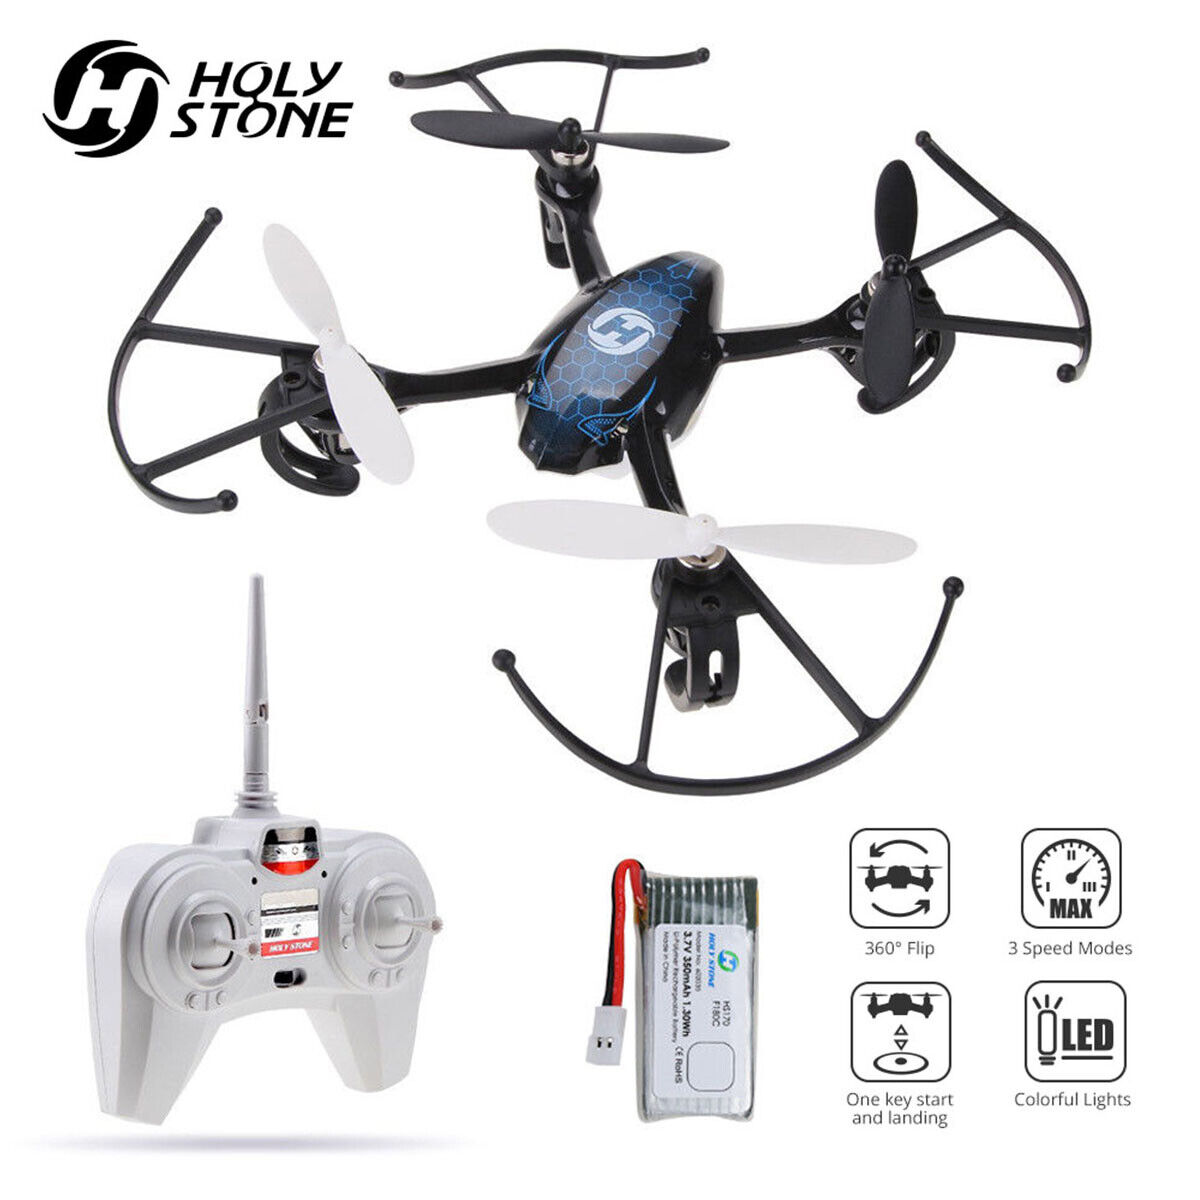 Holy Stone HS170 Predator Mini RC Drone Quadcopter Beginner Best gift for kids